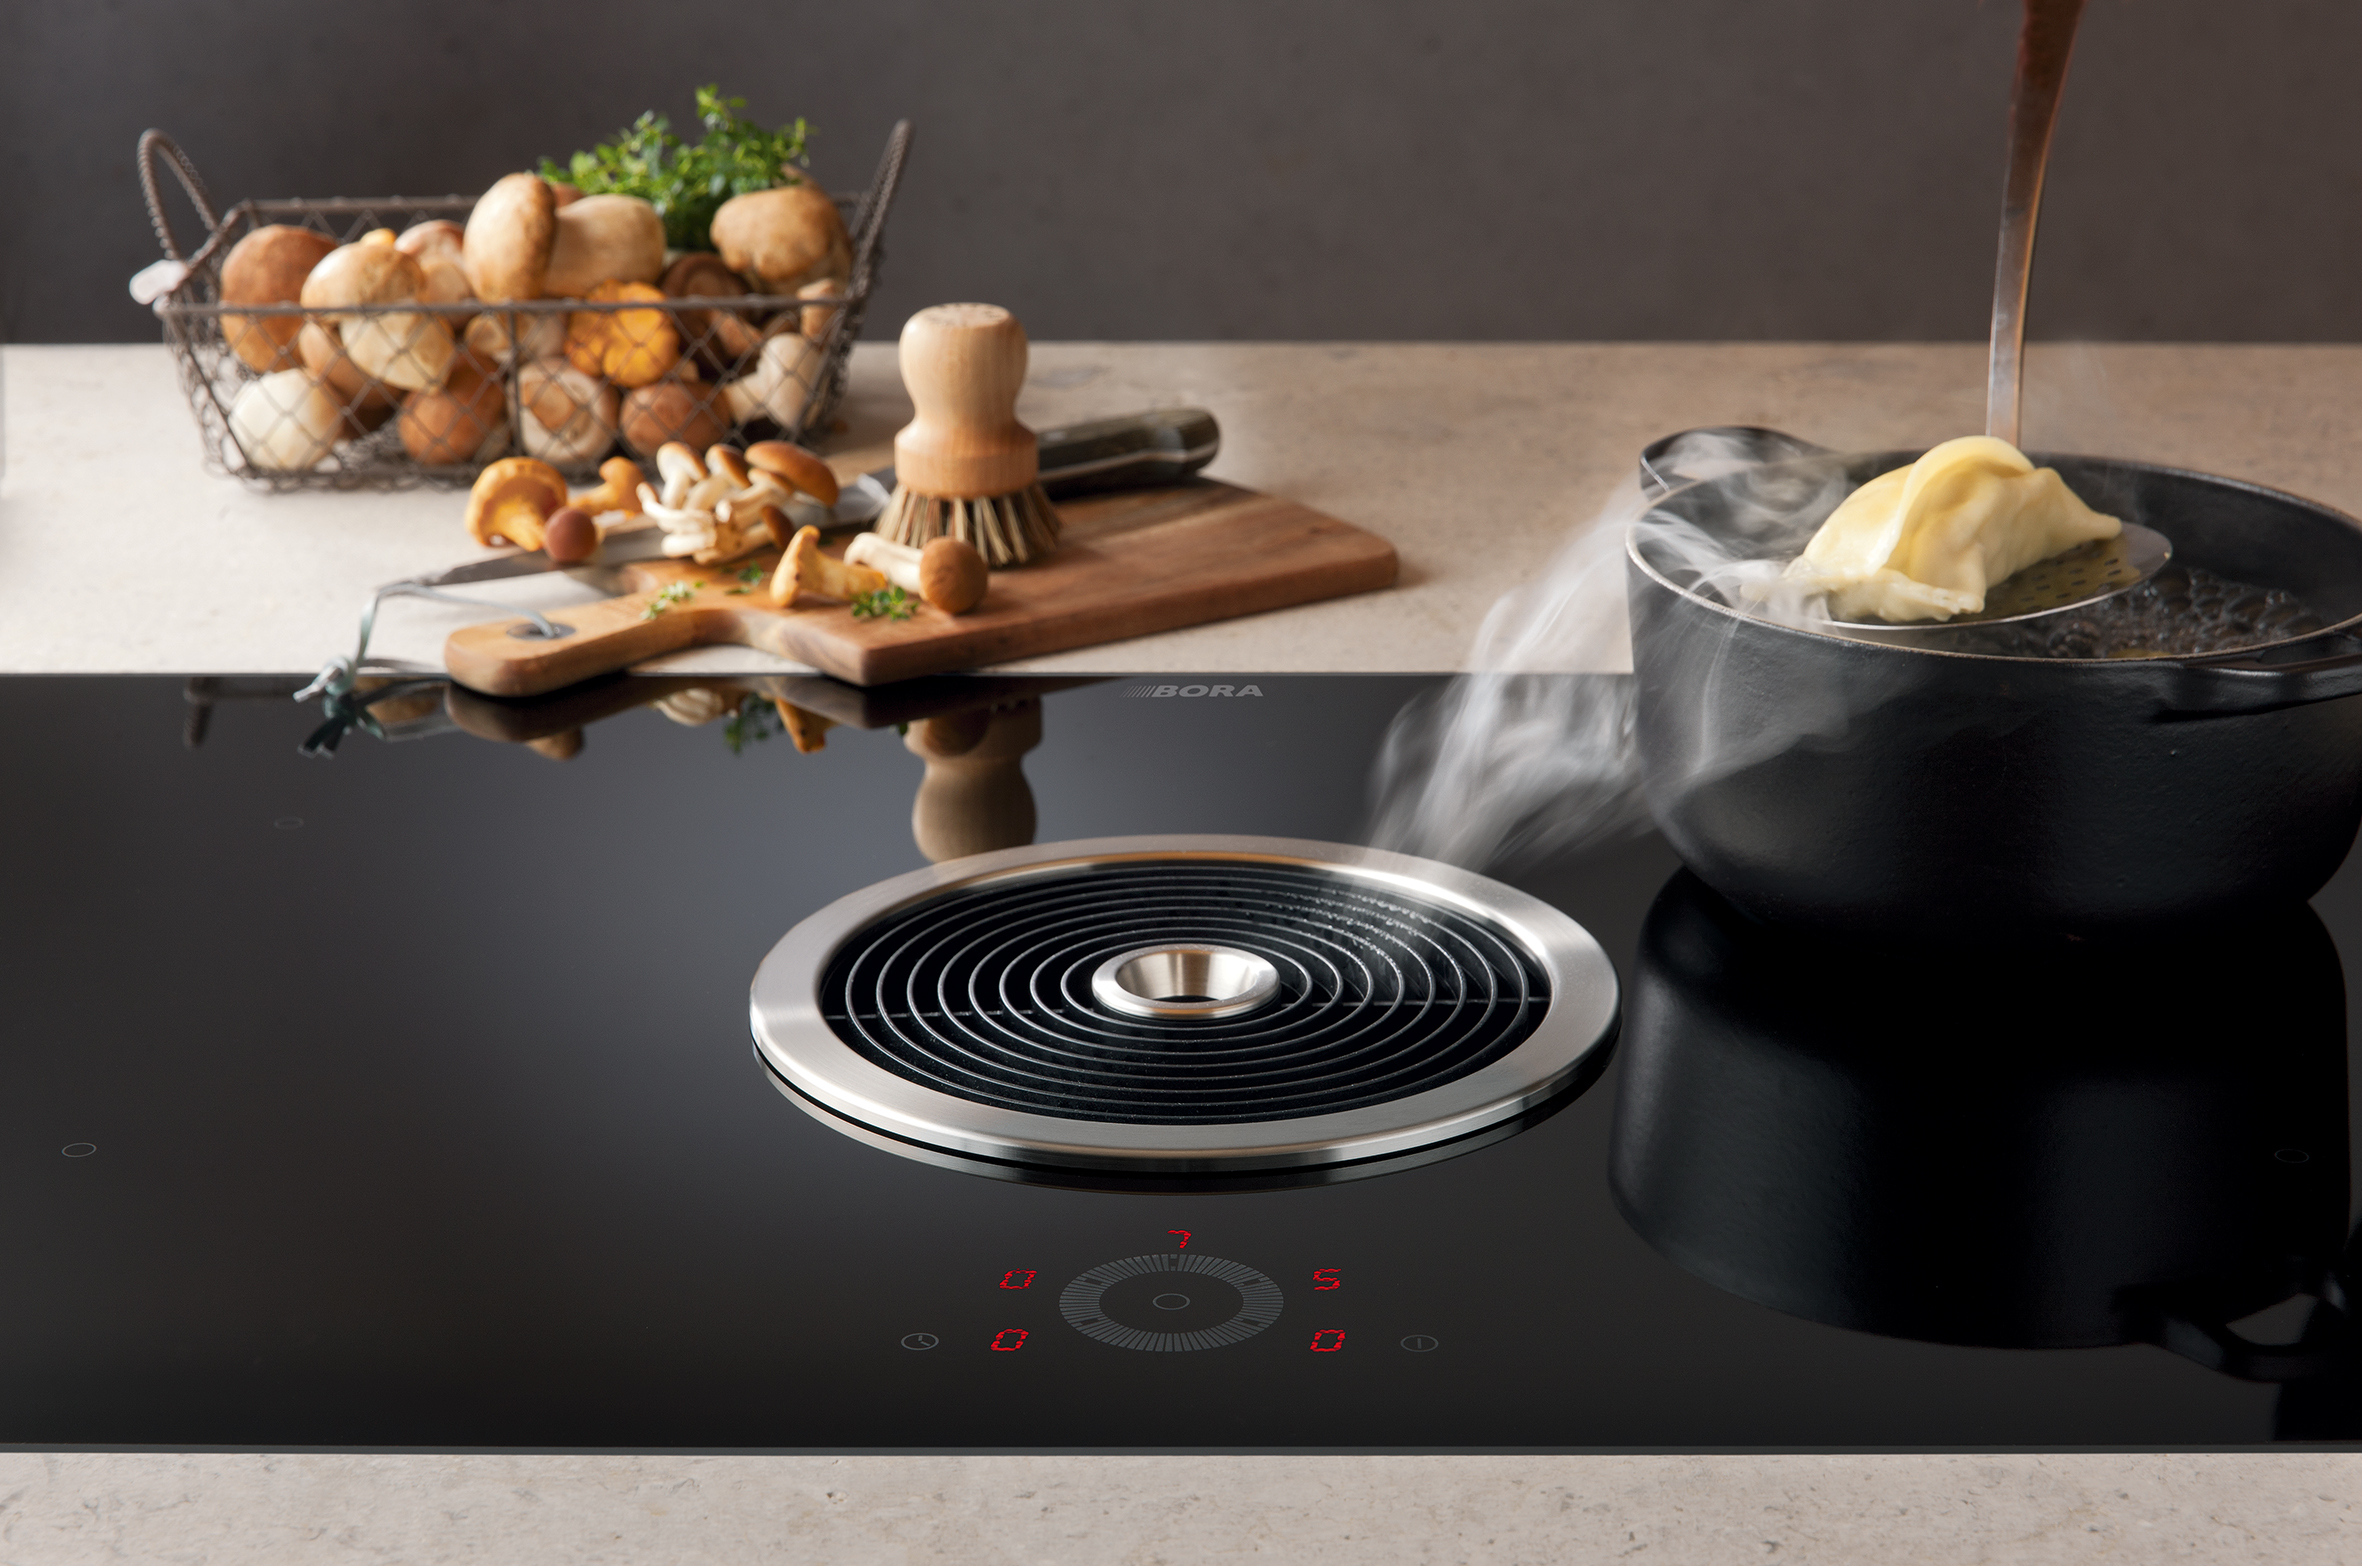 Reilly s Home Appliances – Bora Basic induction cooktop